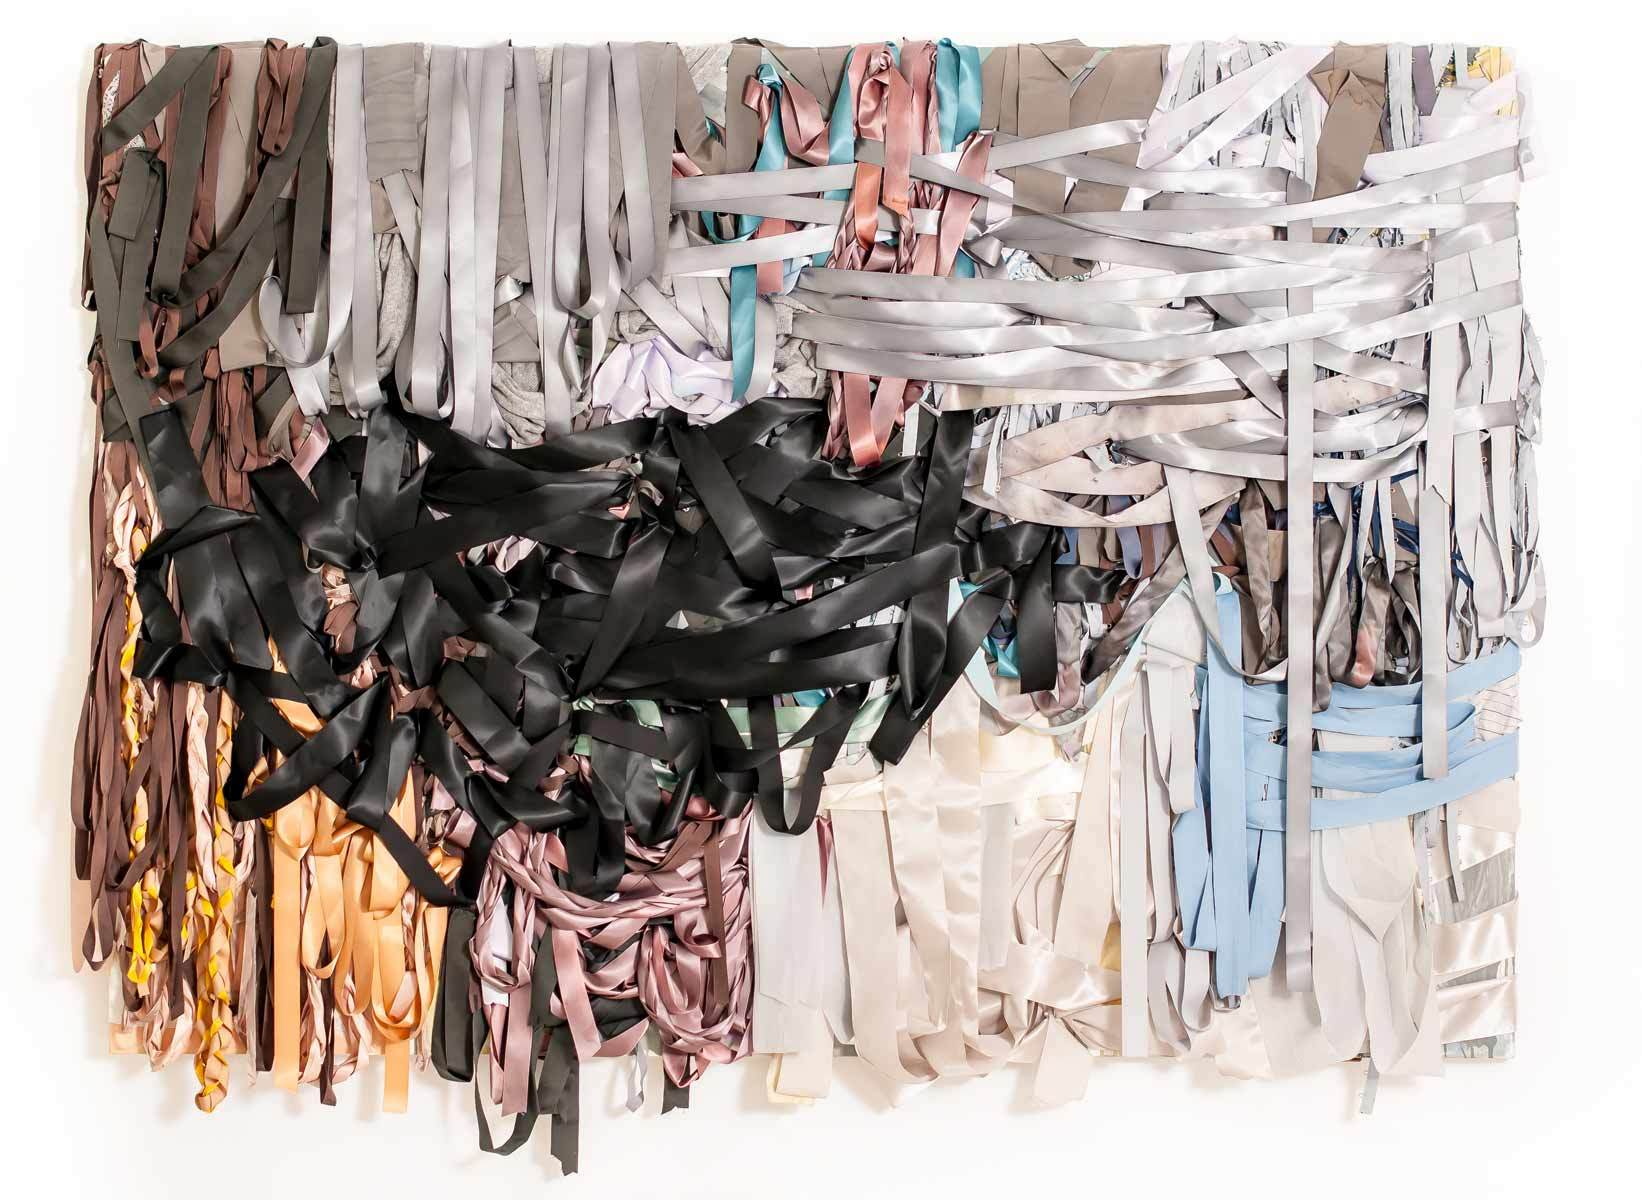 Vadis Turner, Storm Spot, 2013. ribbon, dyed textiles, acrylic paint and mixed media. 60 x 84 x 4 inches.